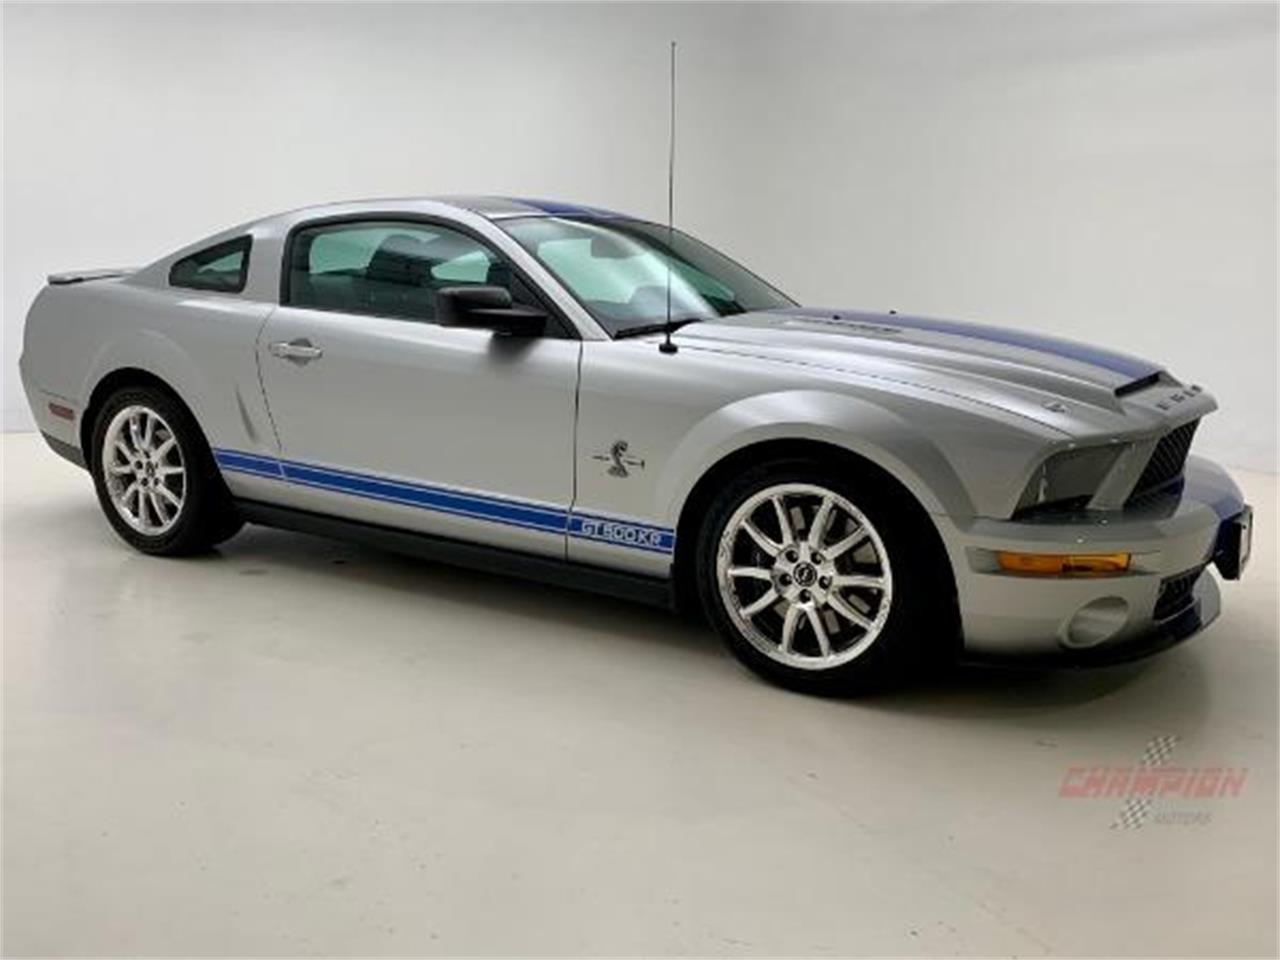 2009 Shelby Mustang for sale in Syosset, NY – photo 6